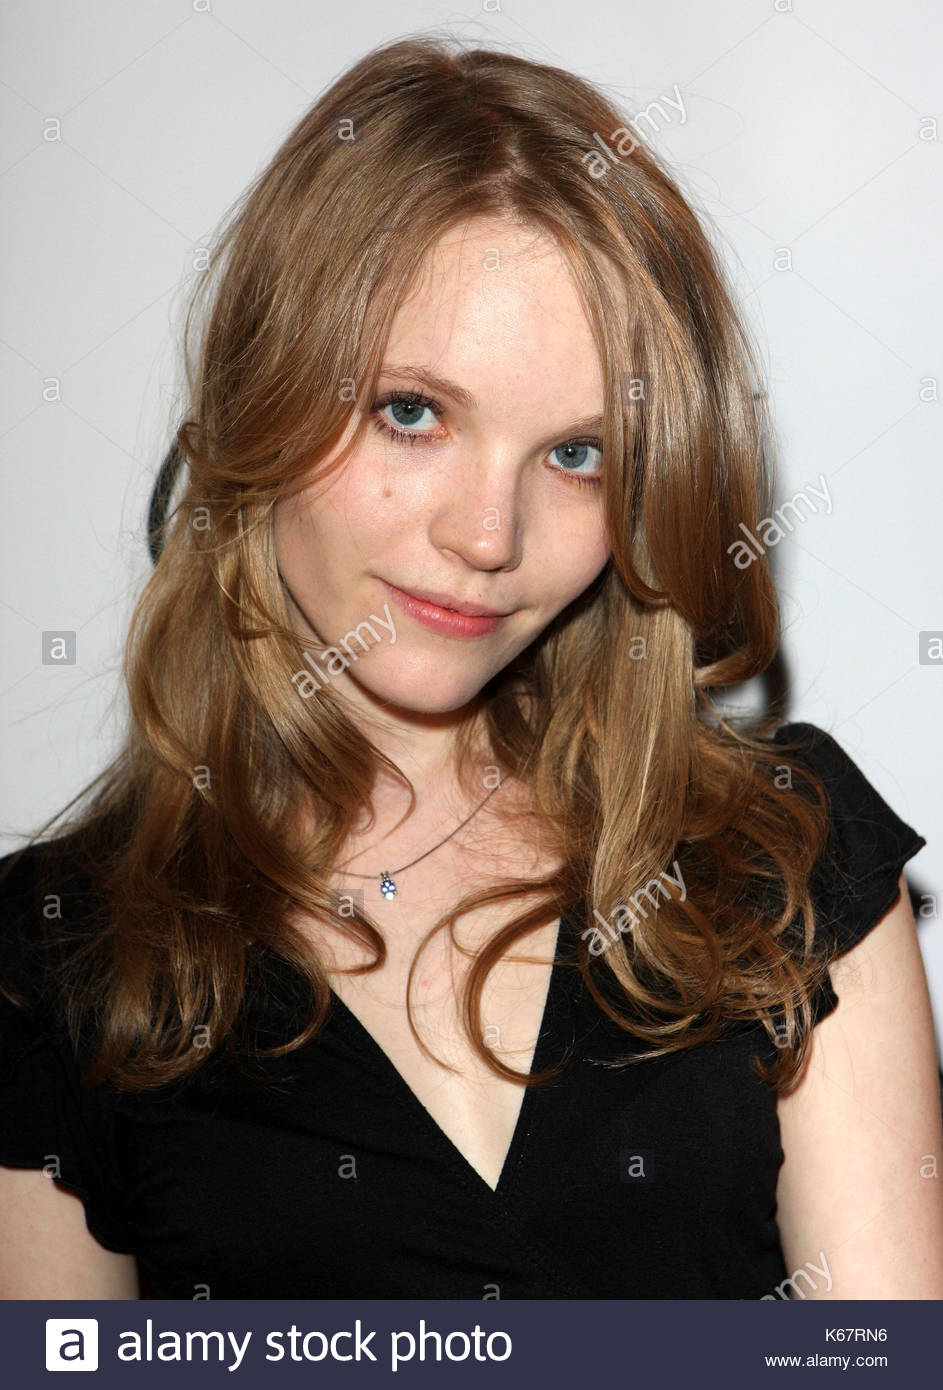 Tamzin Merchant naked (81 photo), Pussy, Is a cute, Feet, swimsuit 2019